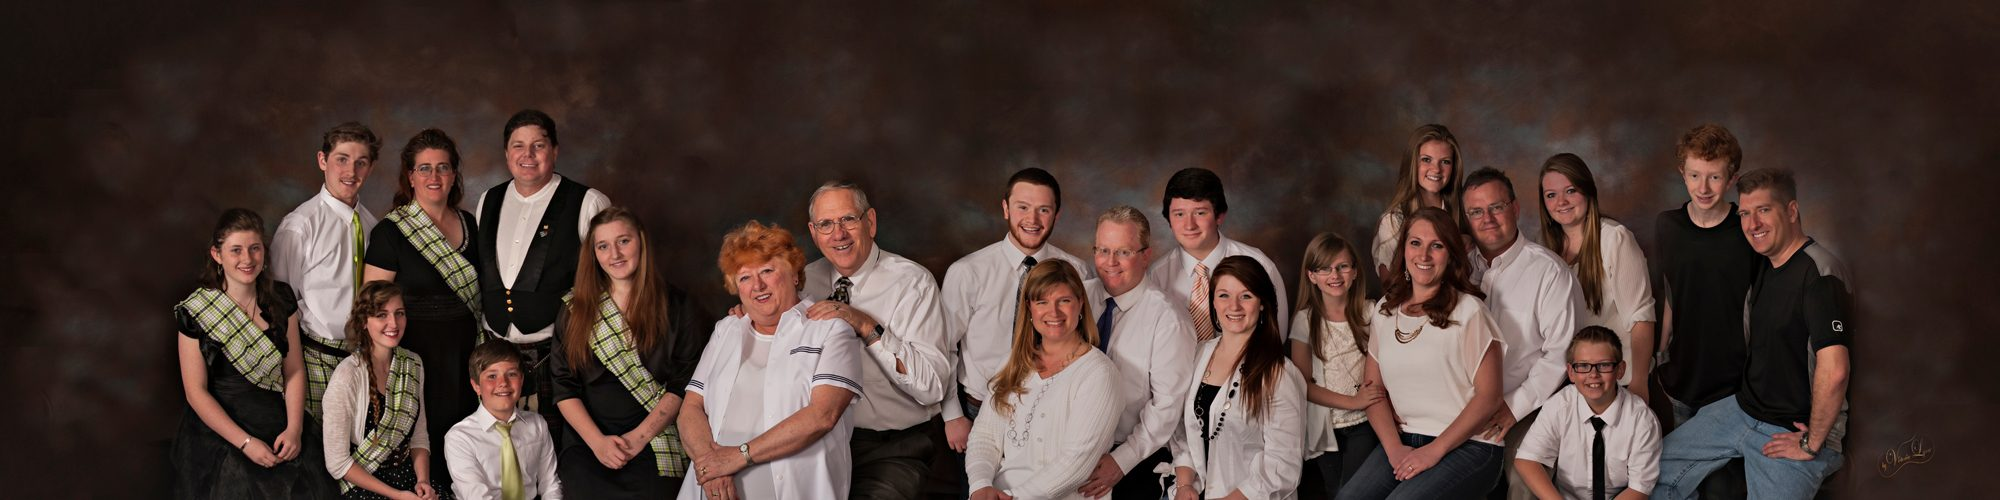 big_family_photo_salt_lake